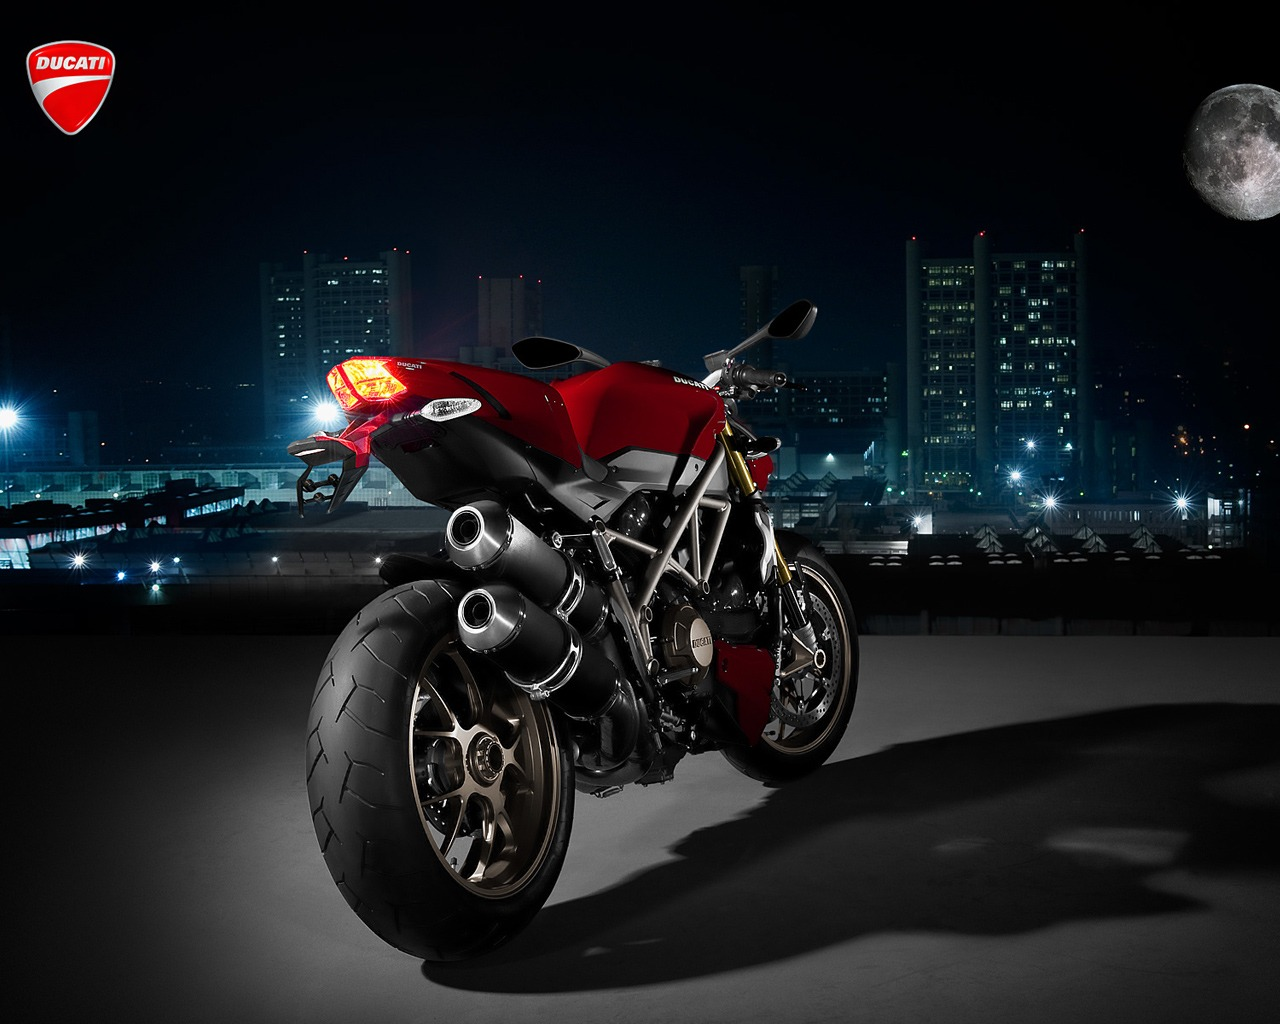 Ducati Streetfigther Wallpaper Ducati Motorcycles Wallpapers